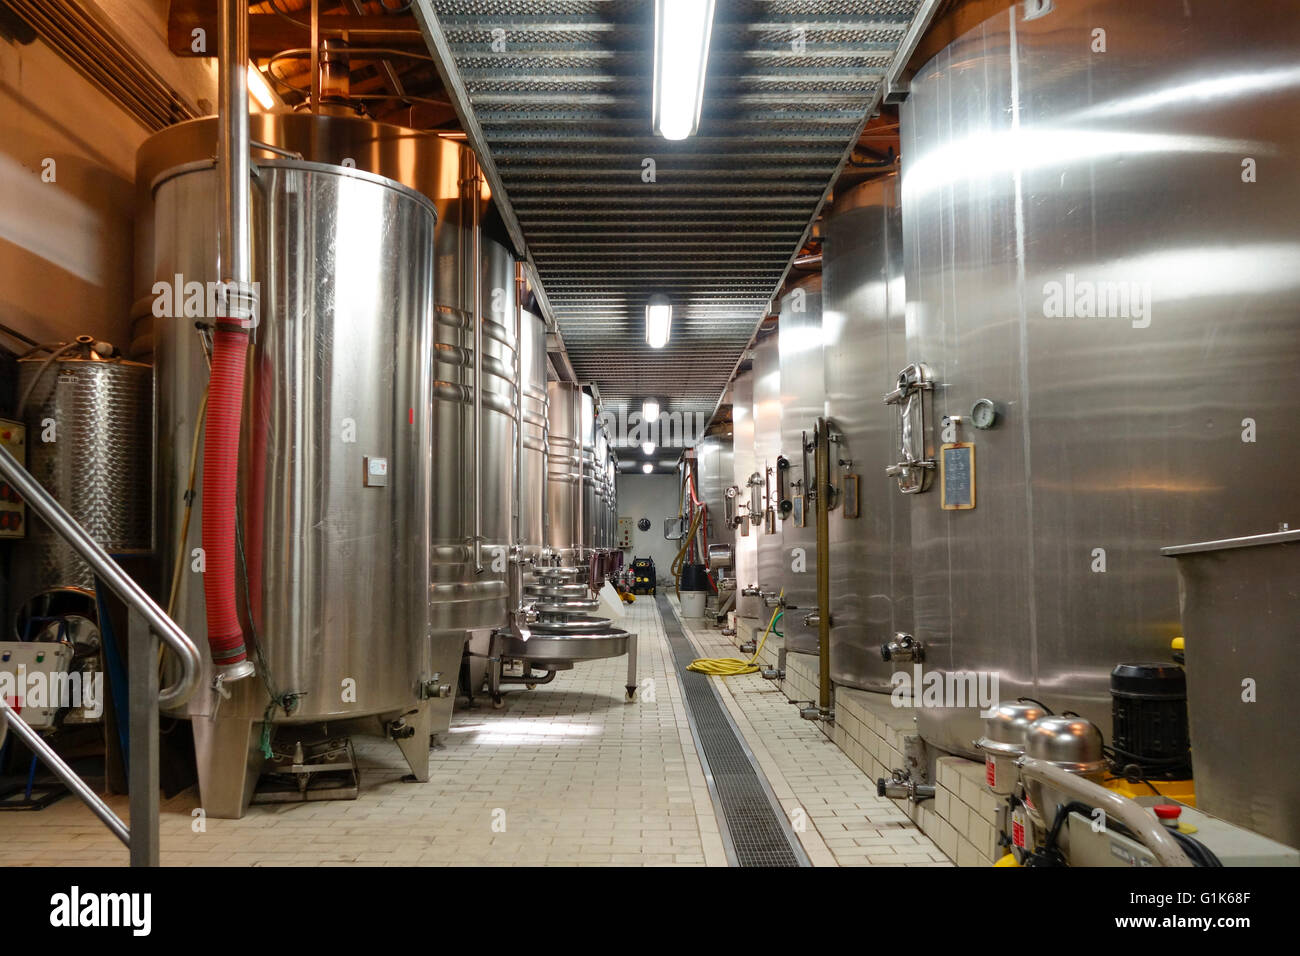 stainless-steel-fermentation-tanks-for-c